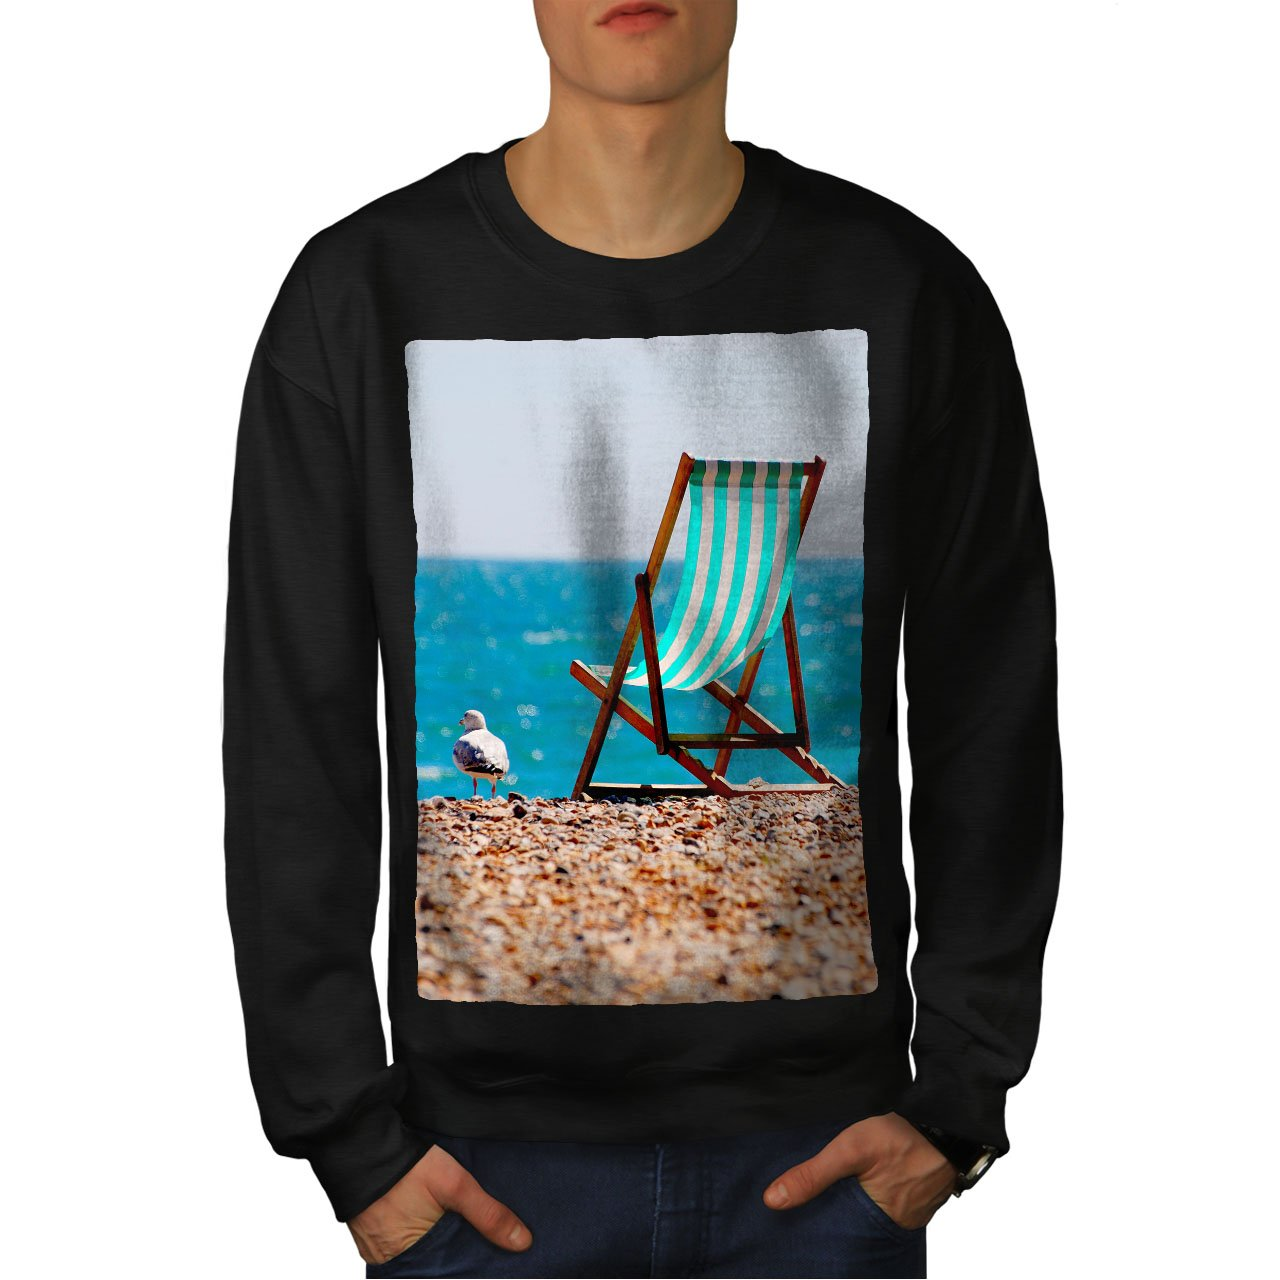 Artist Graphic Design Printed Tee Wellcoda Sublime Landscape Mens T-shirt